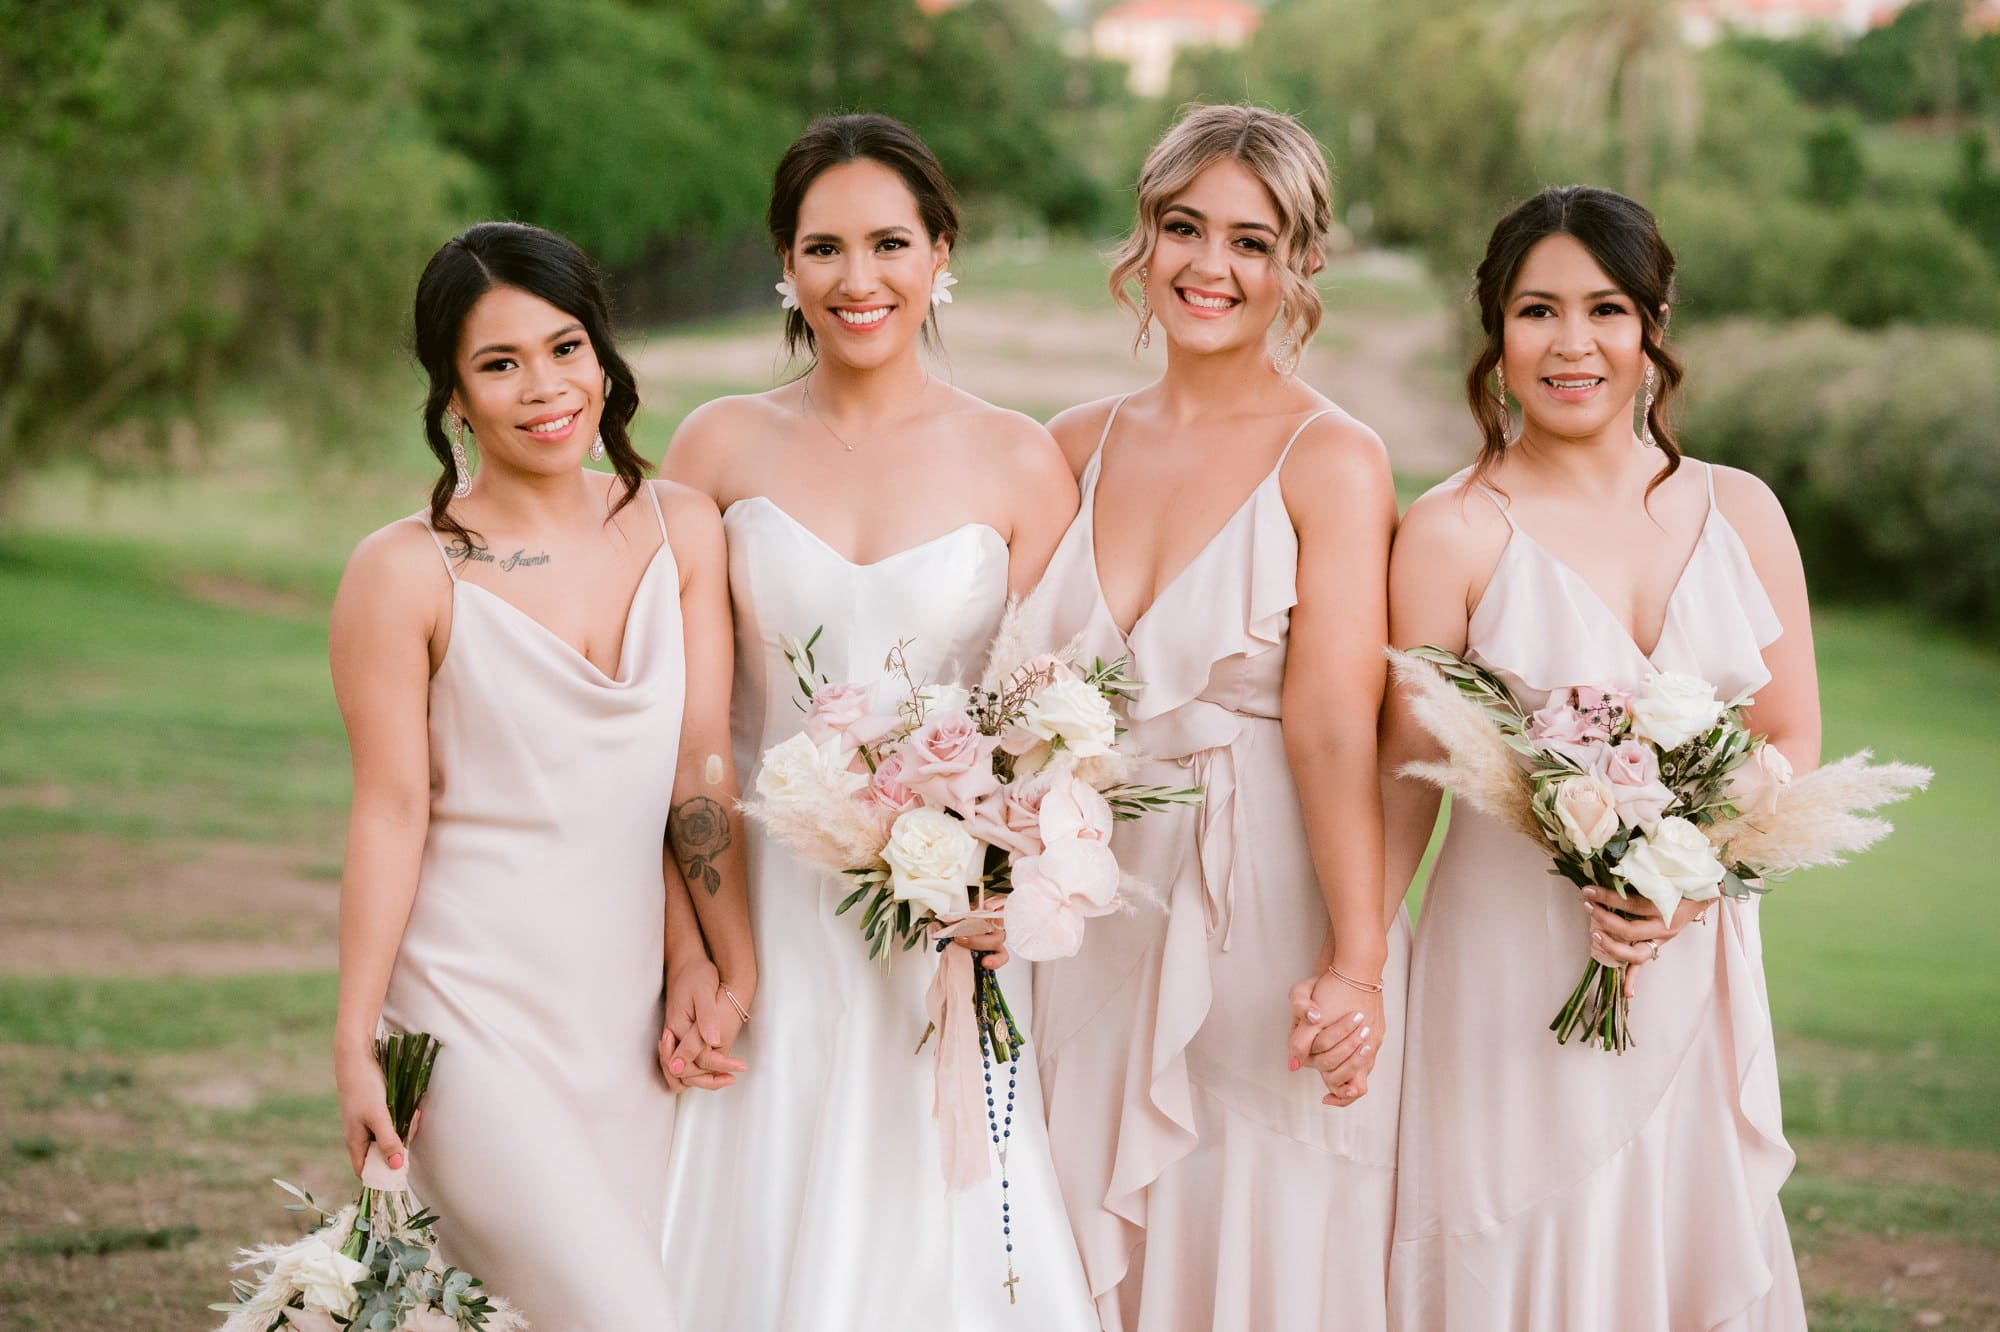 Victoria Park wedding photographer bridesmaids portraits golf course